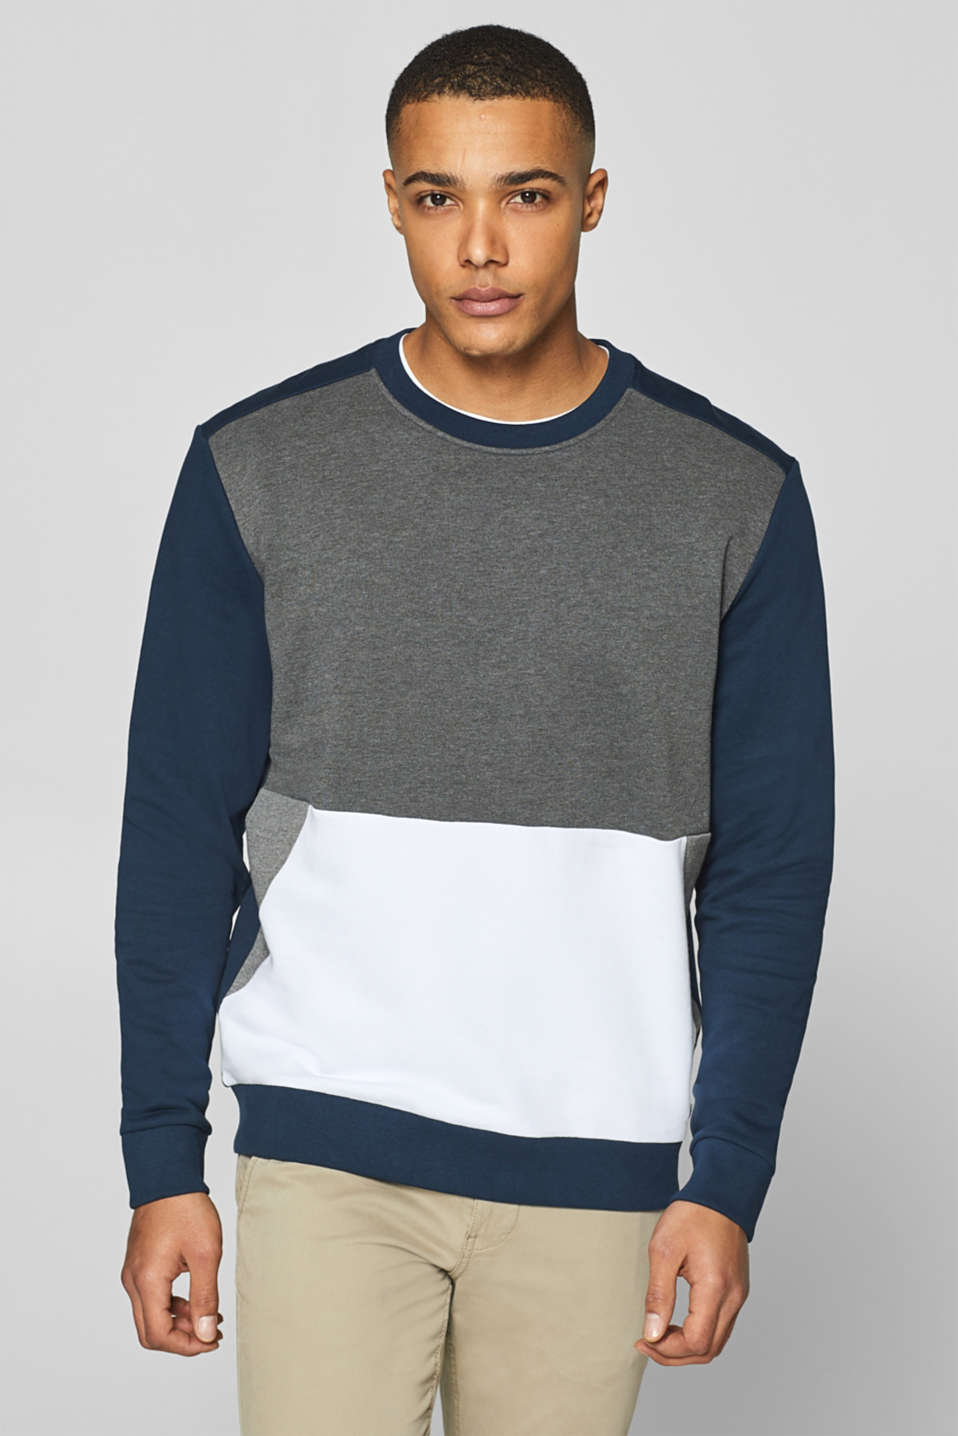 edc - Colour block sweatshirt van een katoenmix